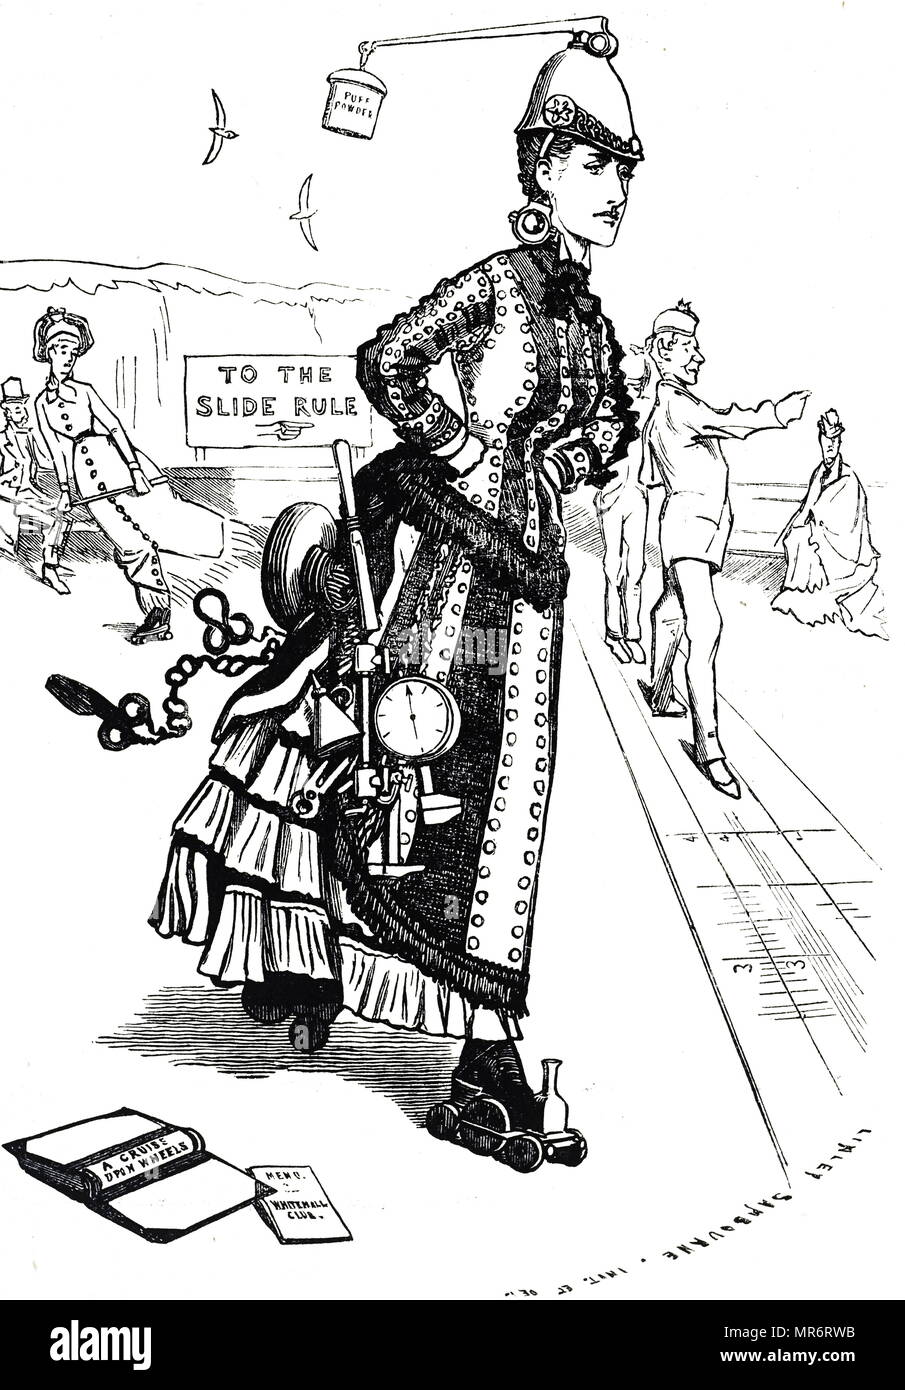 Cartoon commenting on the growing popularity of roller-skates in Great Britain. Dated 19th century Stock Photo